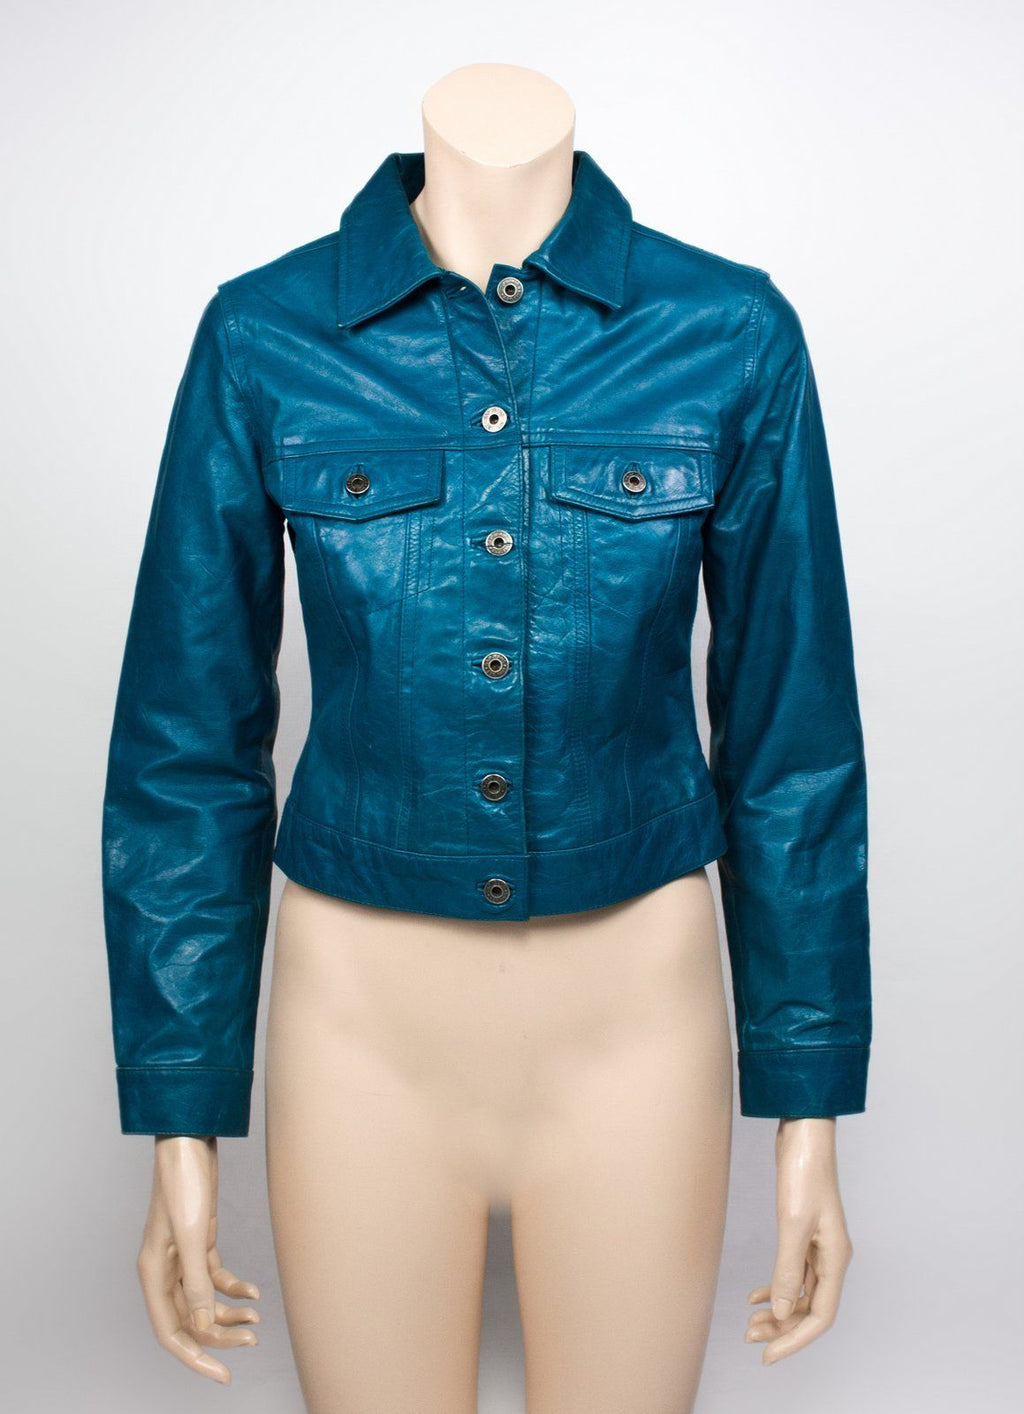 GAP Trucker Jean Style Leather Jacket, XS - secondfirst